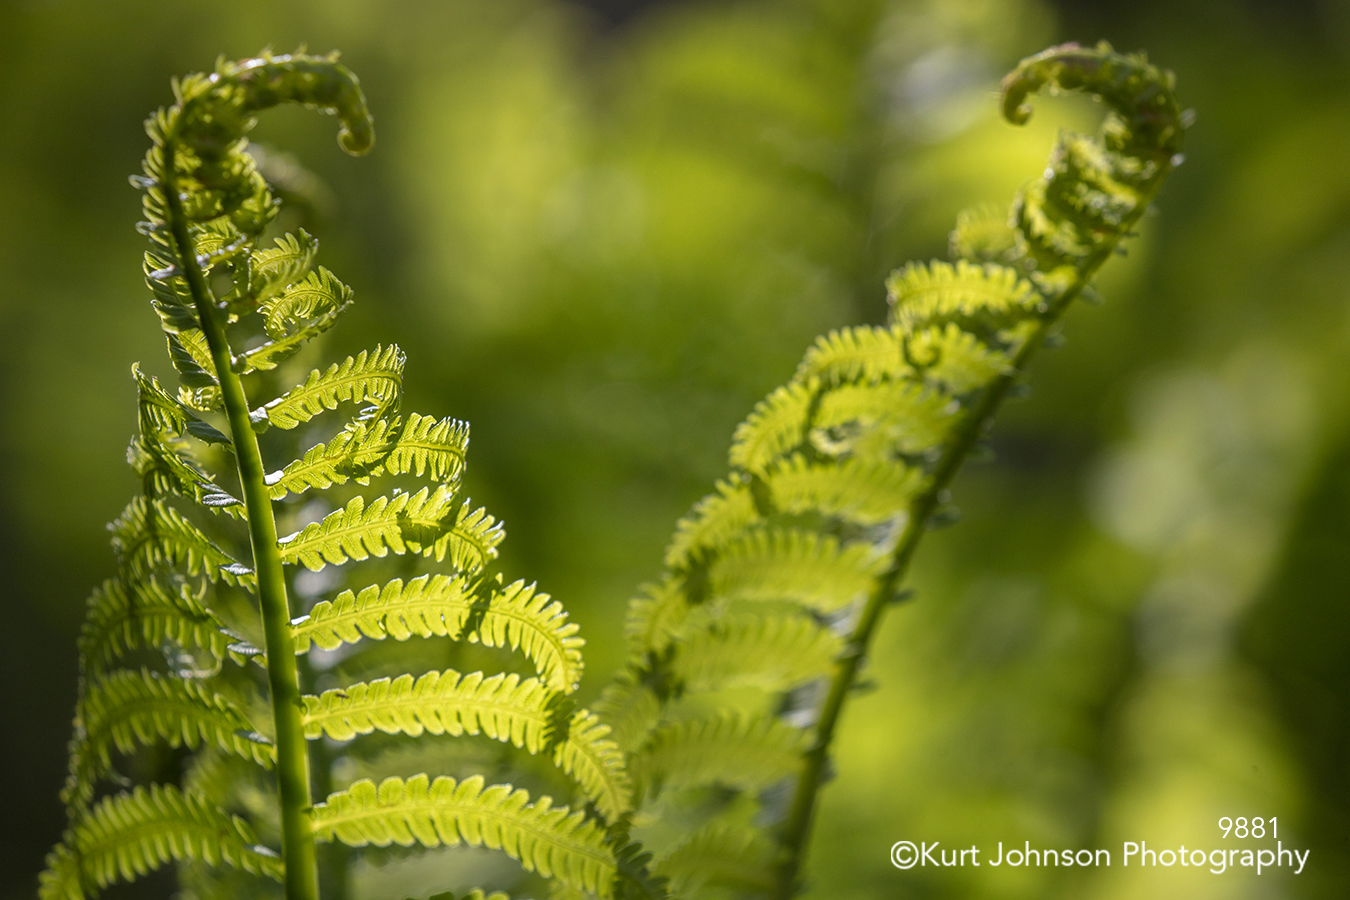 green fern leaves sunlight shadows lines pattern texture detail close up